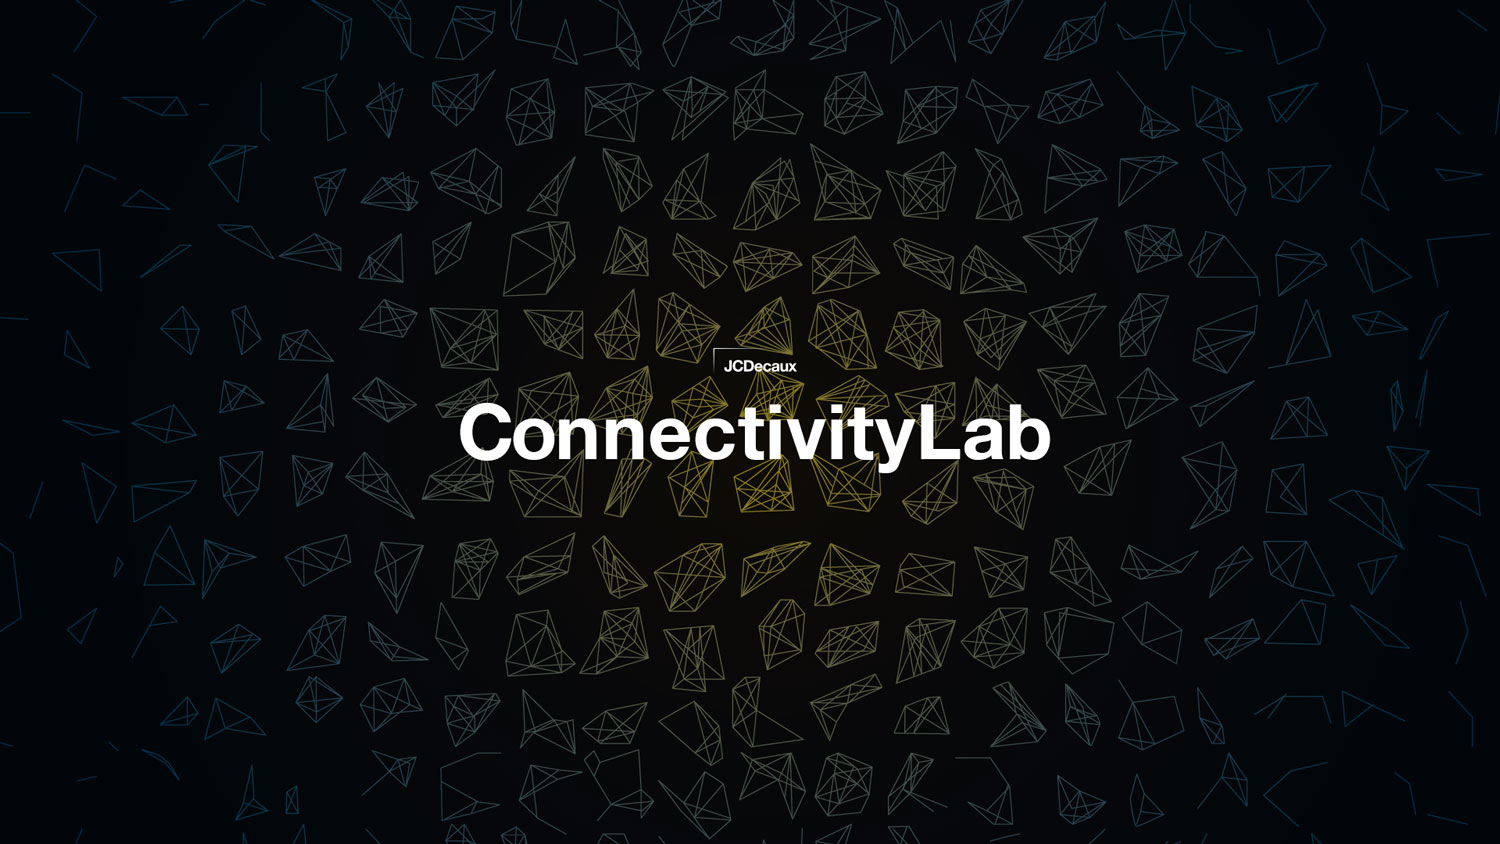 Connectivity Lab